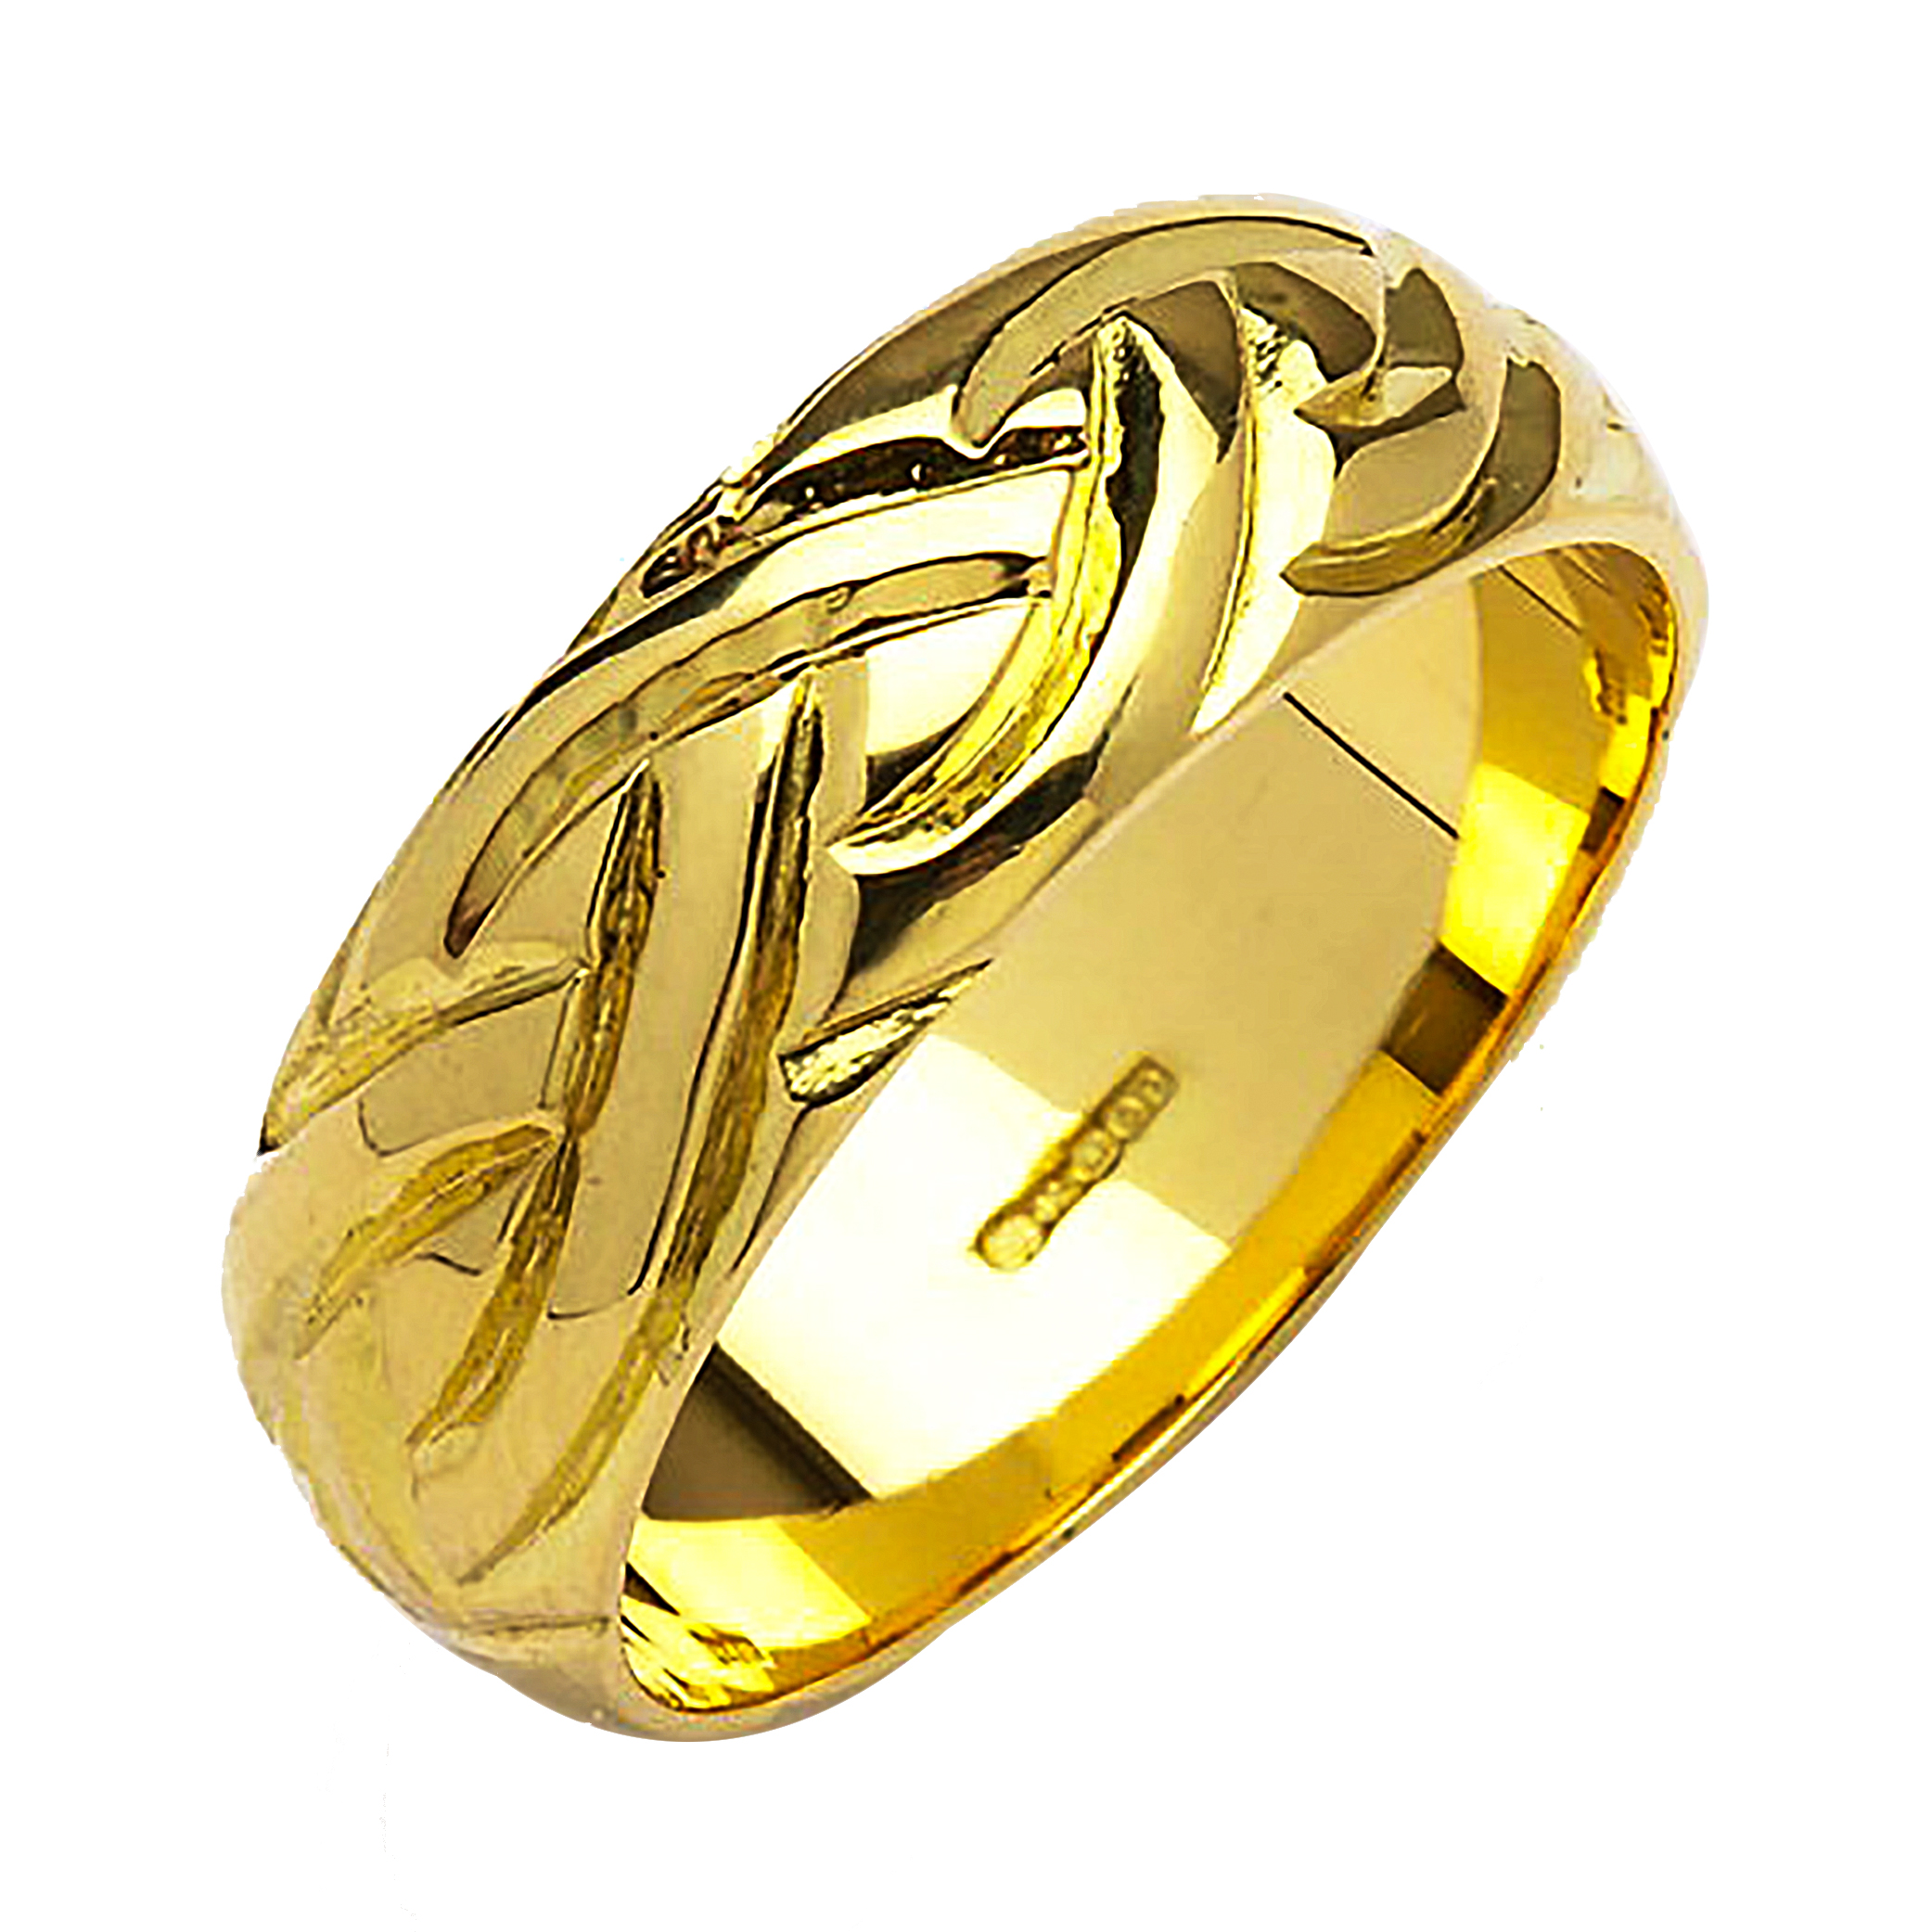 gold rings diamond shop heart buy online ring love jewellery the